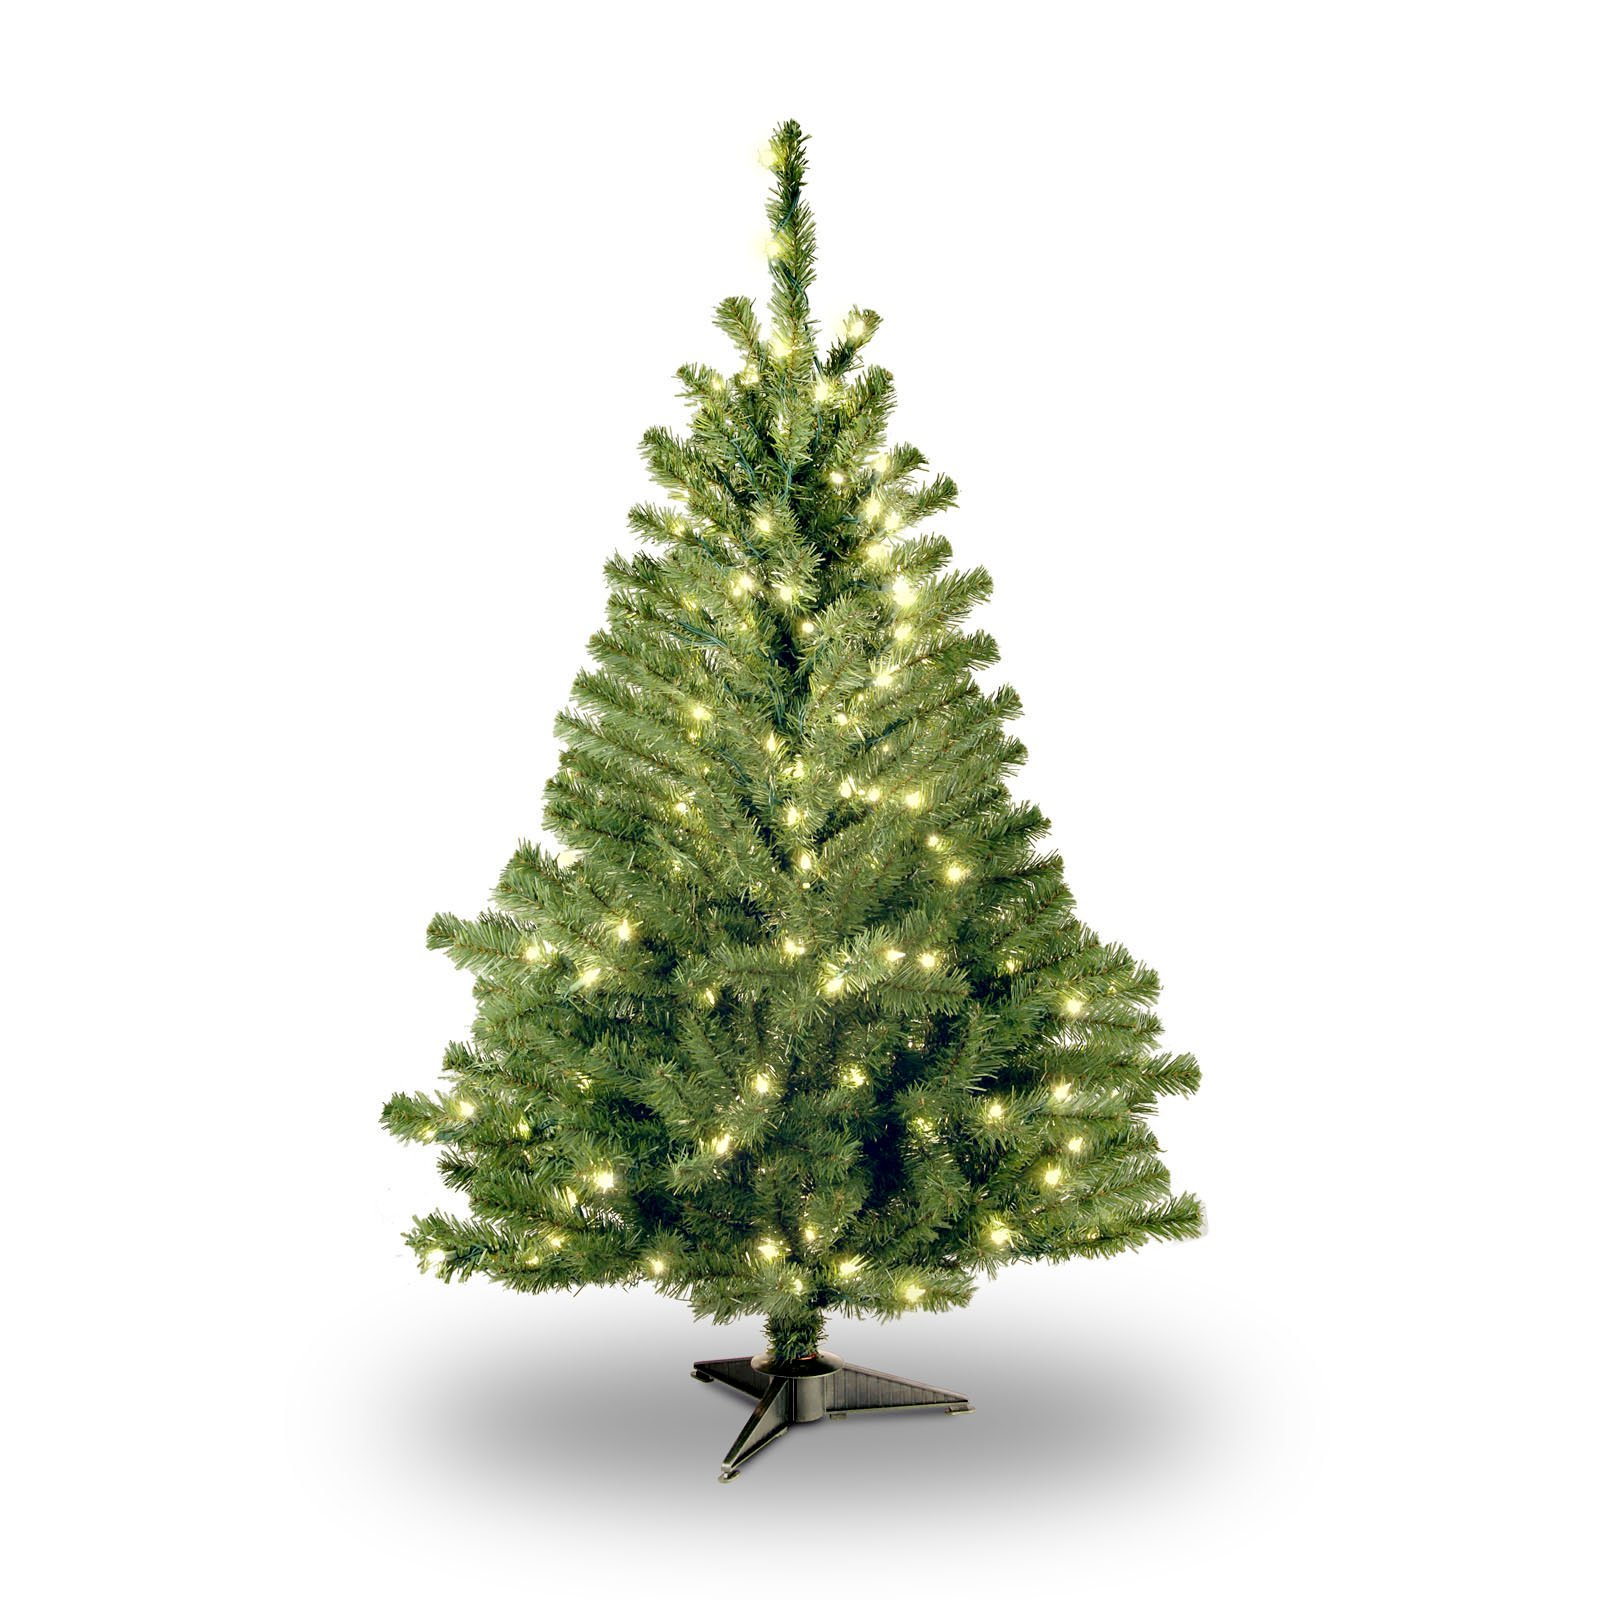 4 foot lighted christmas tree holiday product image national tree prelit 4 kincaid spruce artificial christmas with 100 clear lights foot trees walmartcom